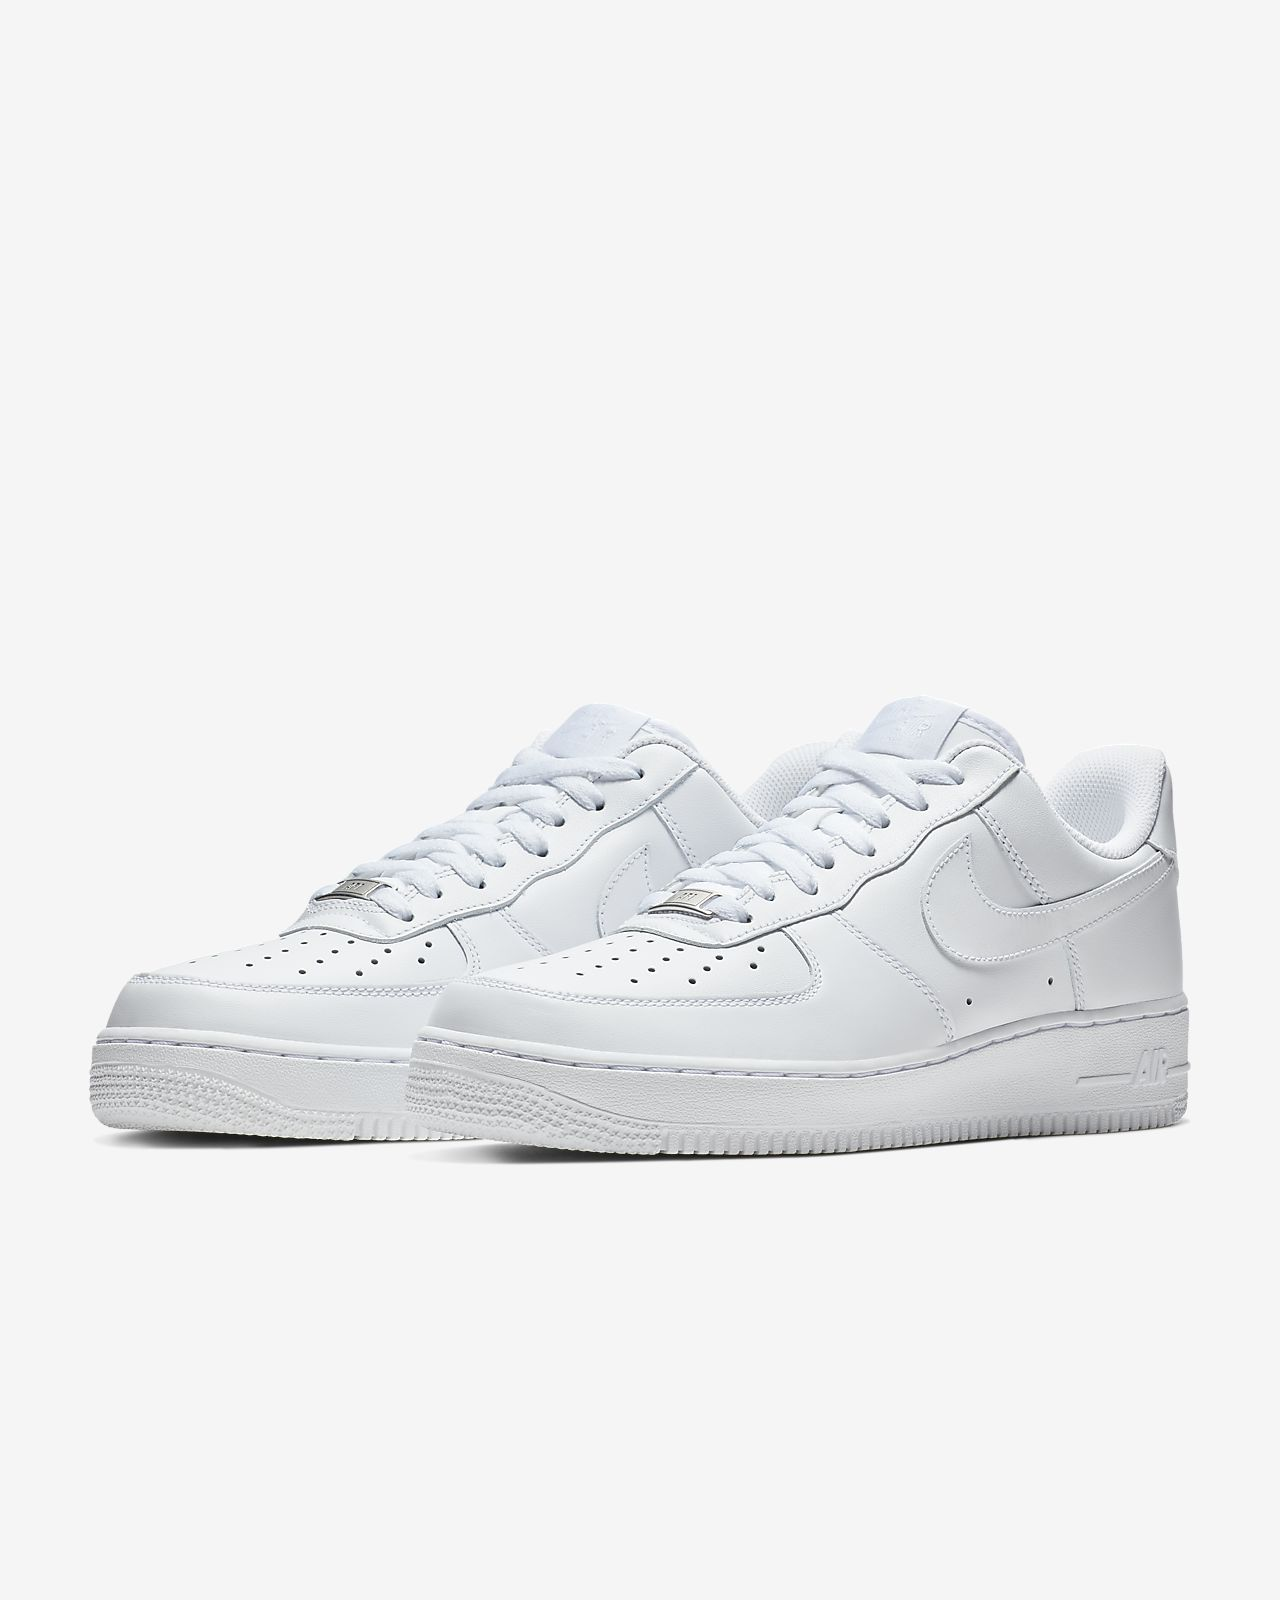 Nike Air Force 1 '07 Women's Shoe